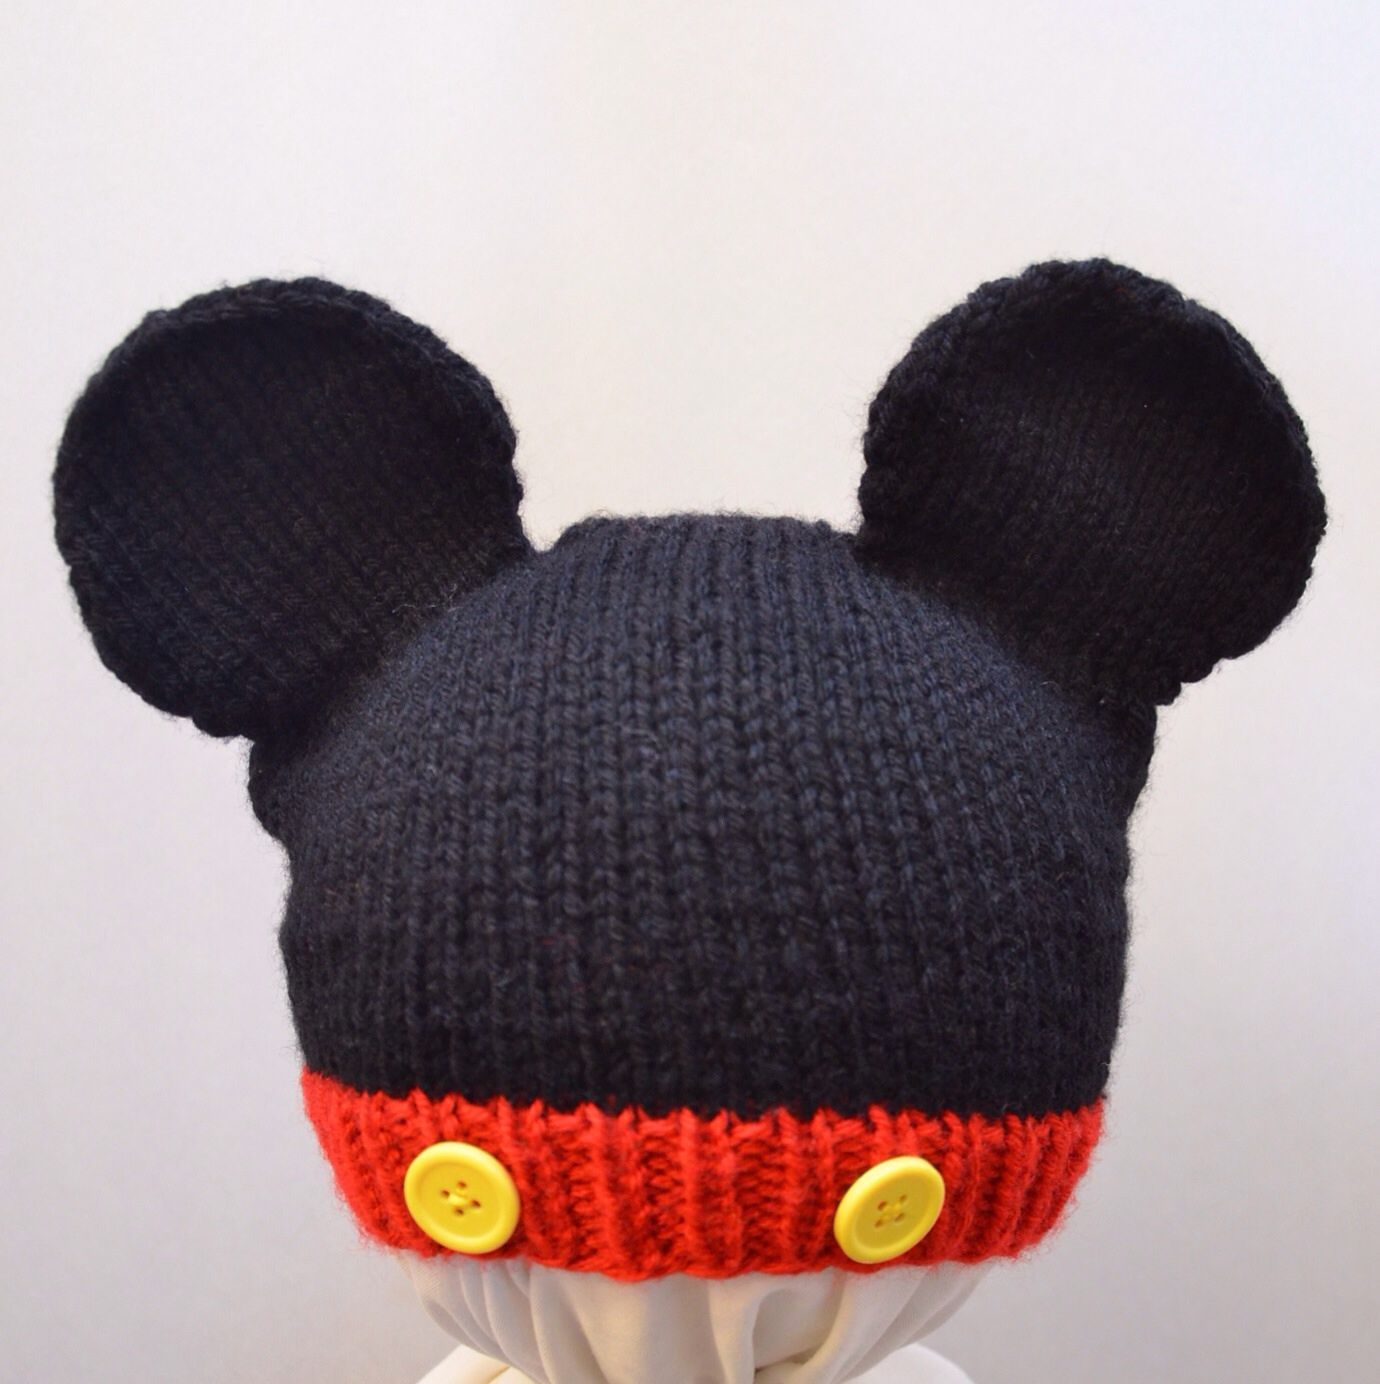 Mickey and Minnie Mouse Knit Hat pattern by Cynthia Diosdado | Knit ...